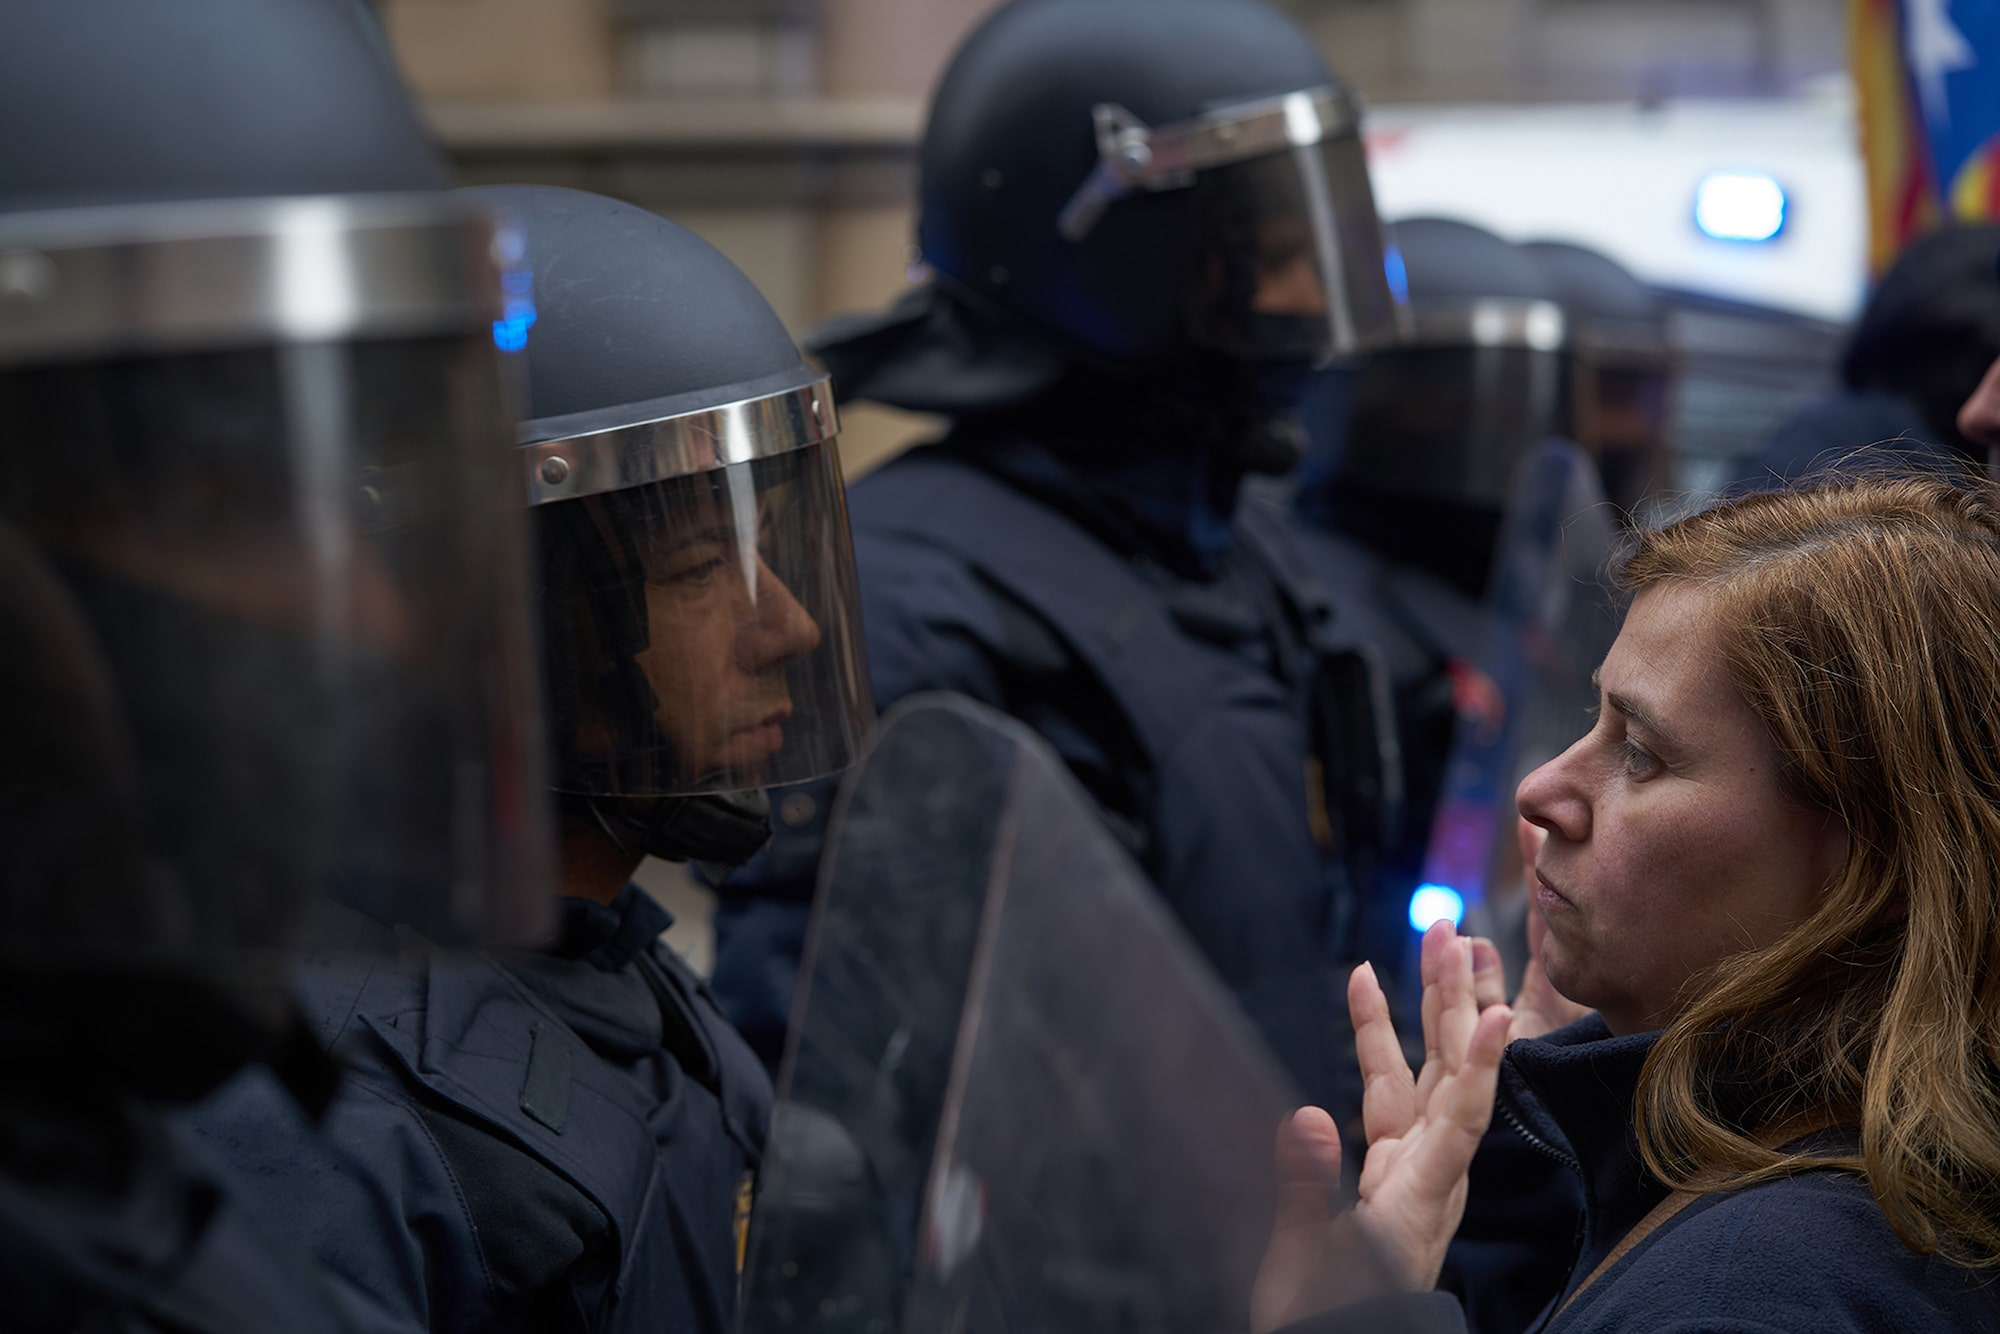 samuel aranda sony alpha 7RII protester squares up to a policeman during catalan unrest